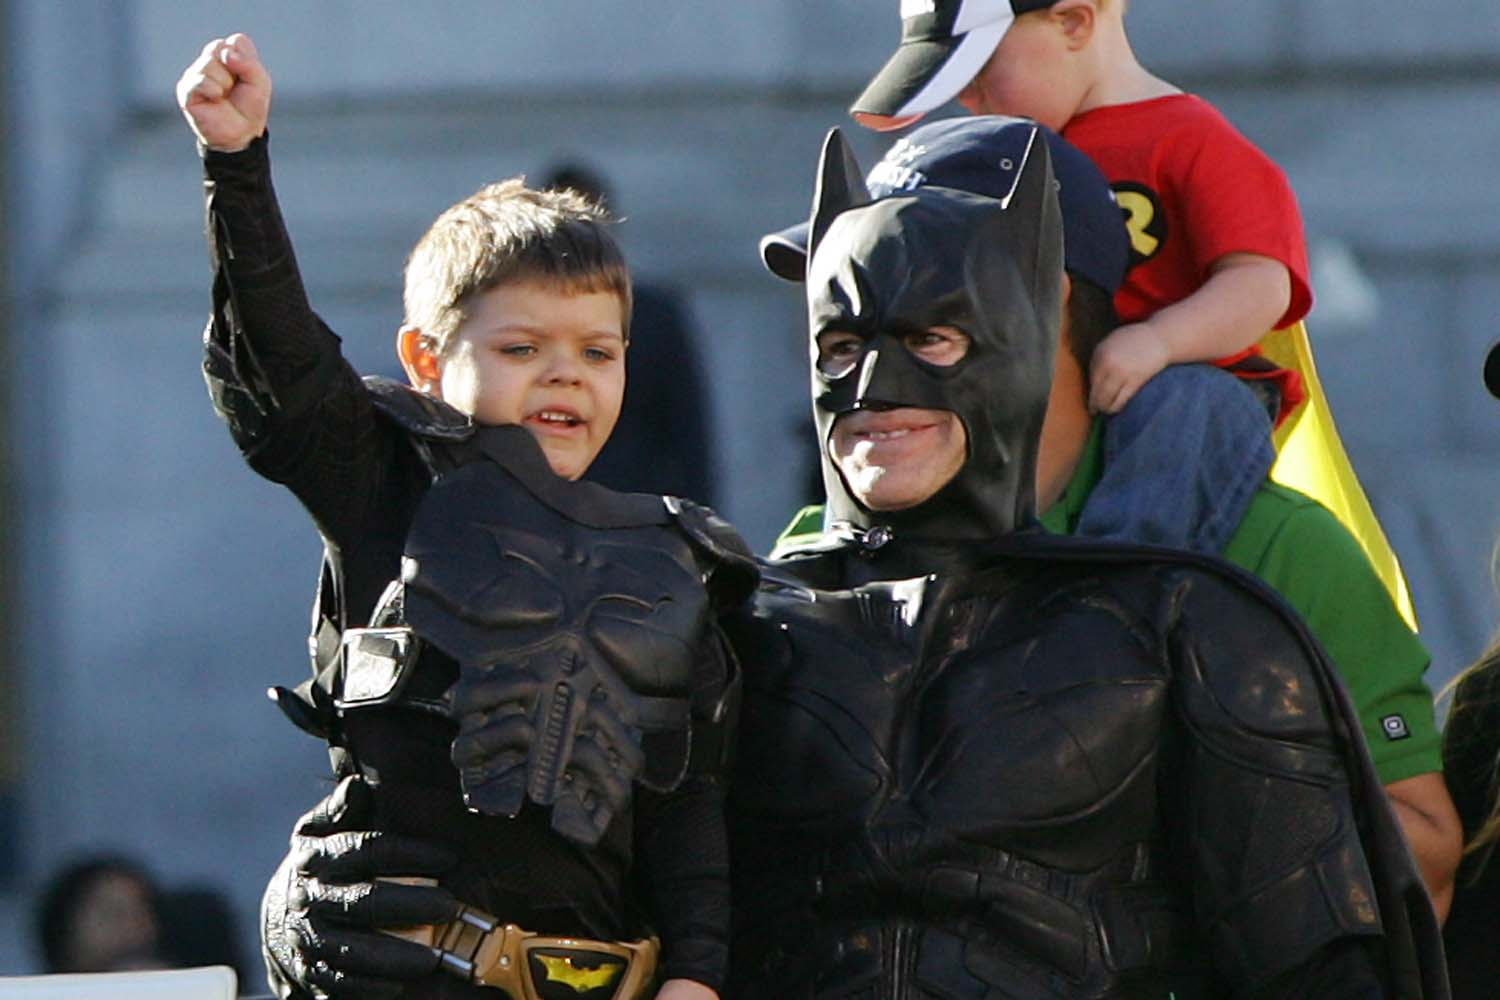 'Batkid Begins' is a real movie that's coming out, and we're SO excited